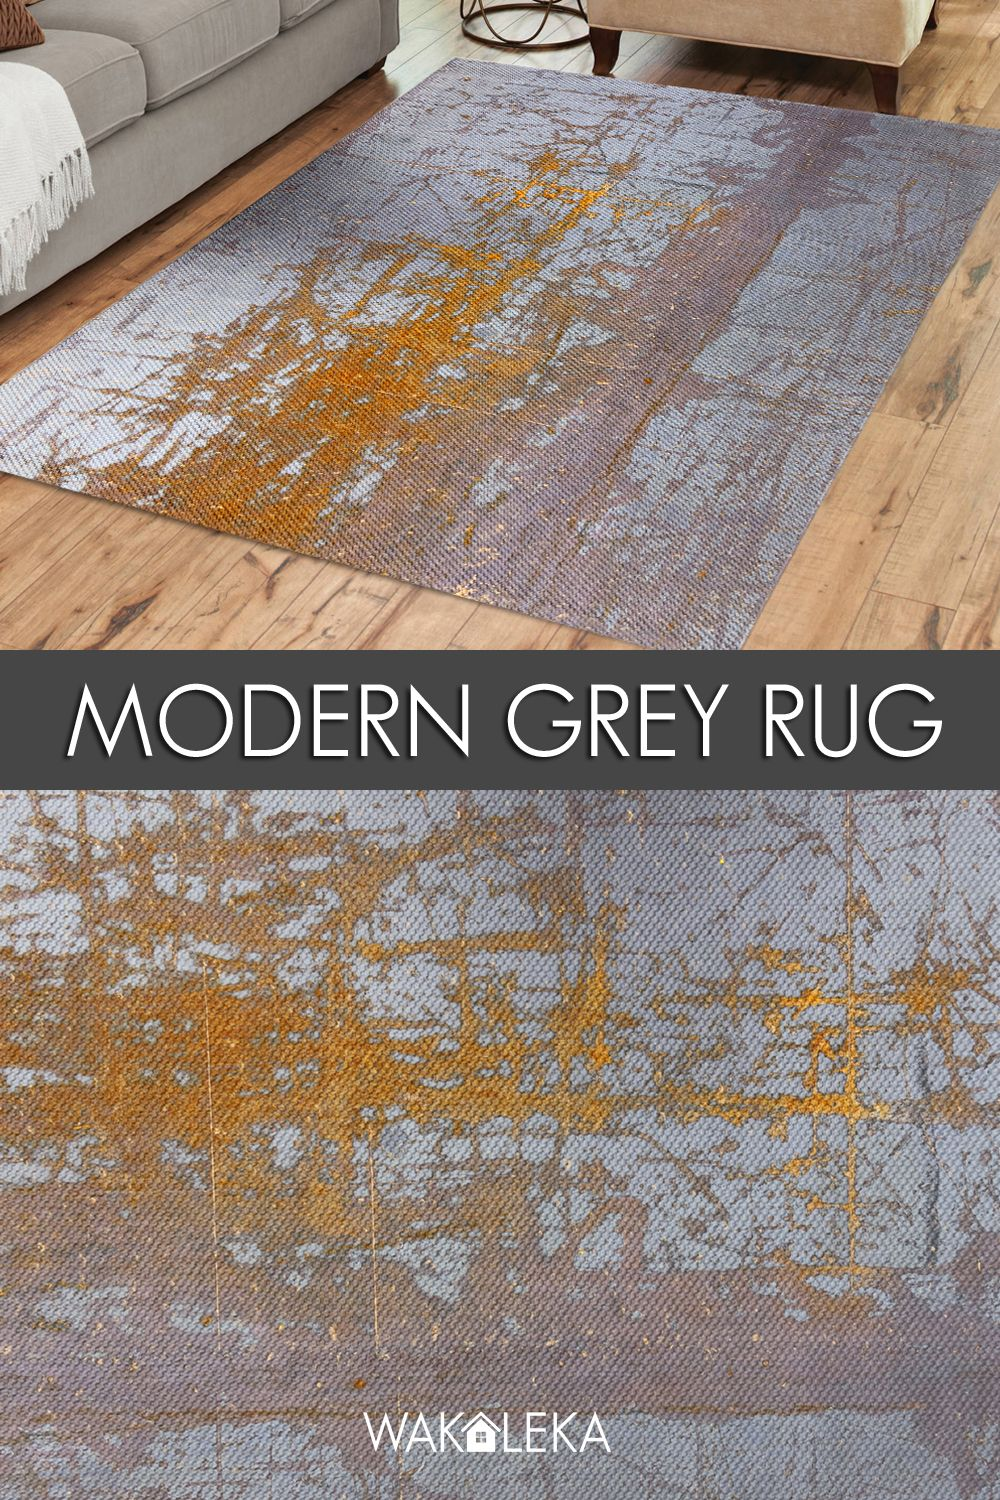 Industrial Style Area Rug Distressed Concrete Design Gray And